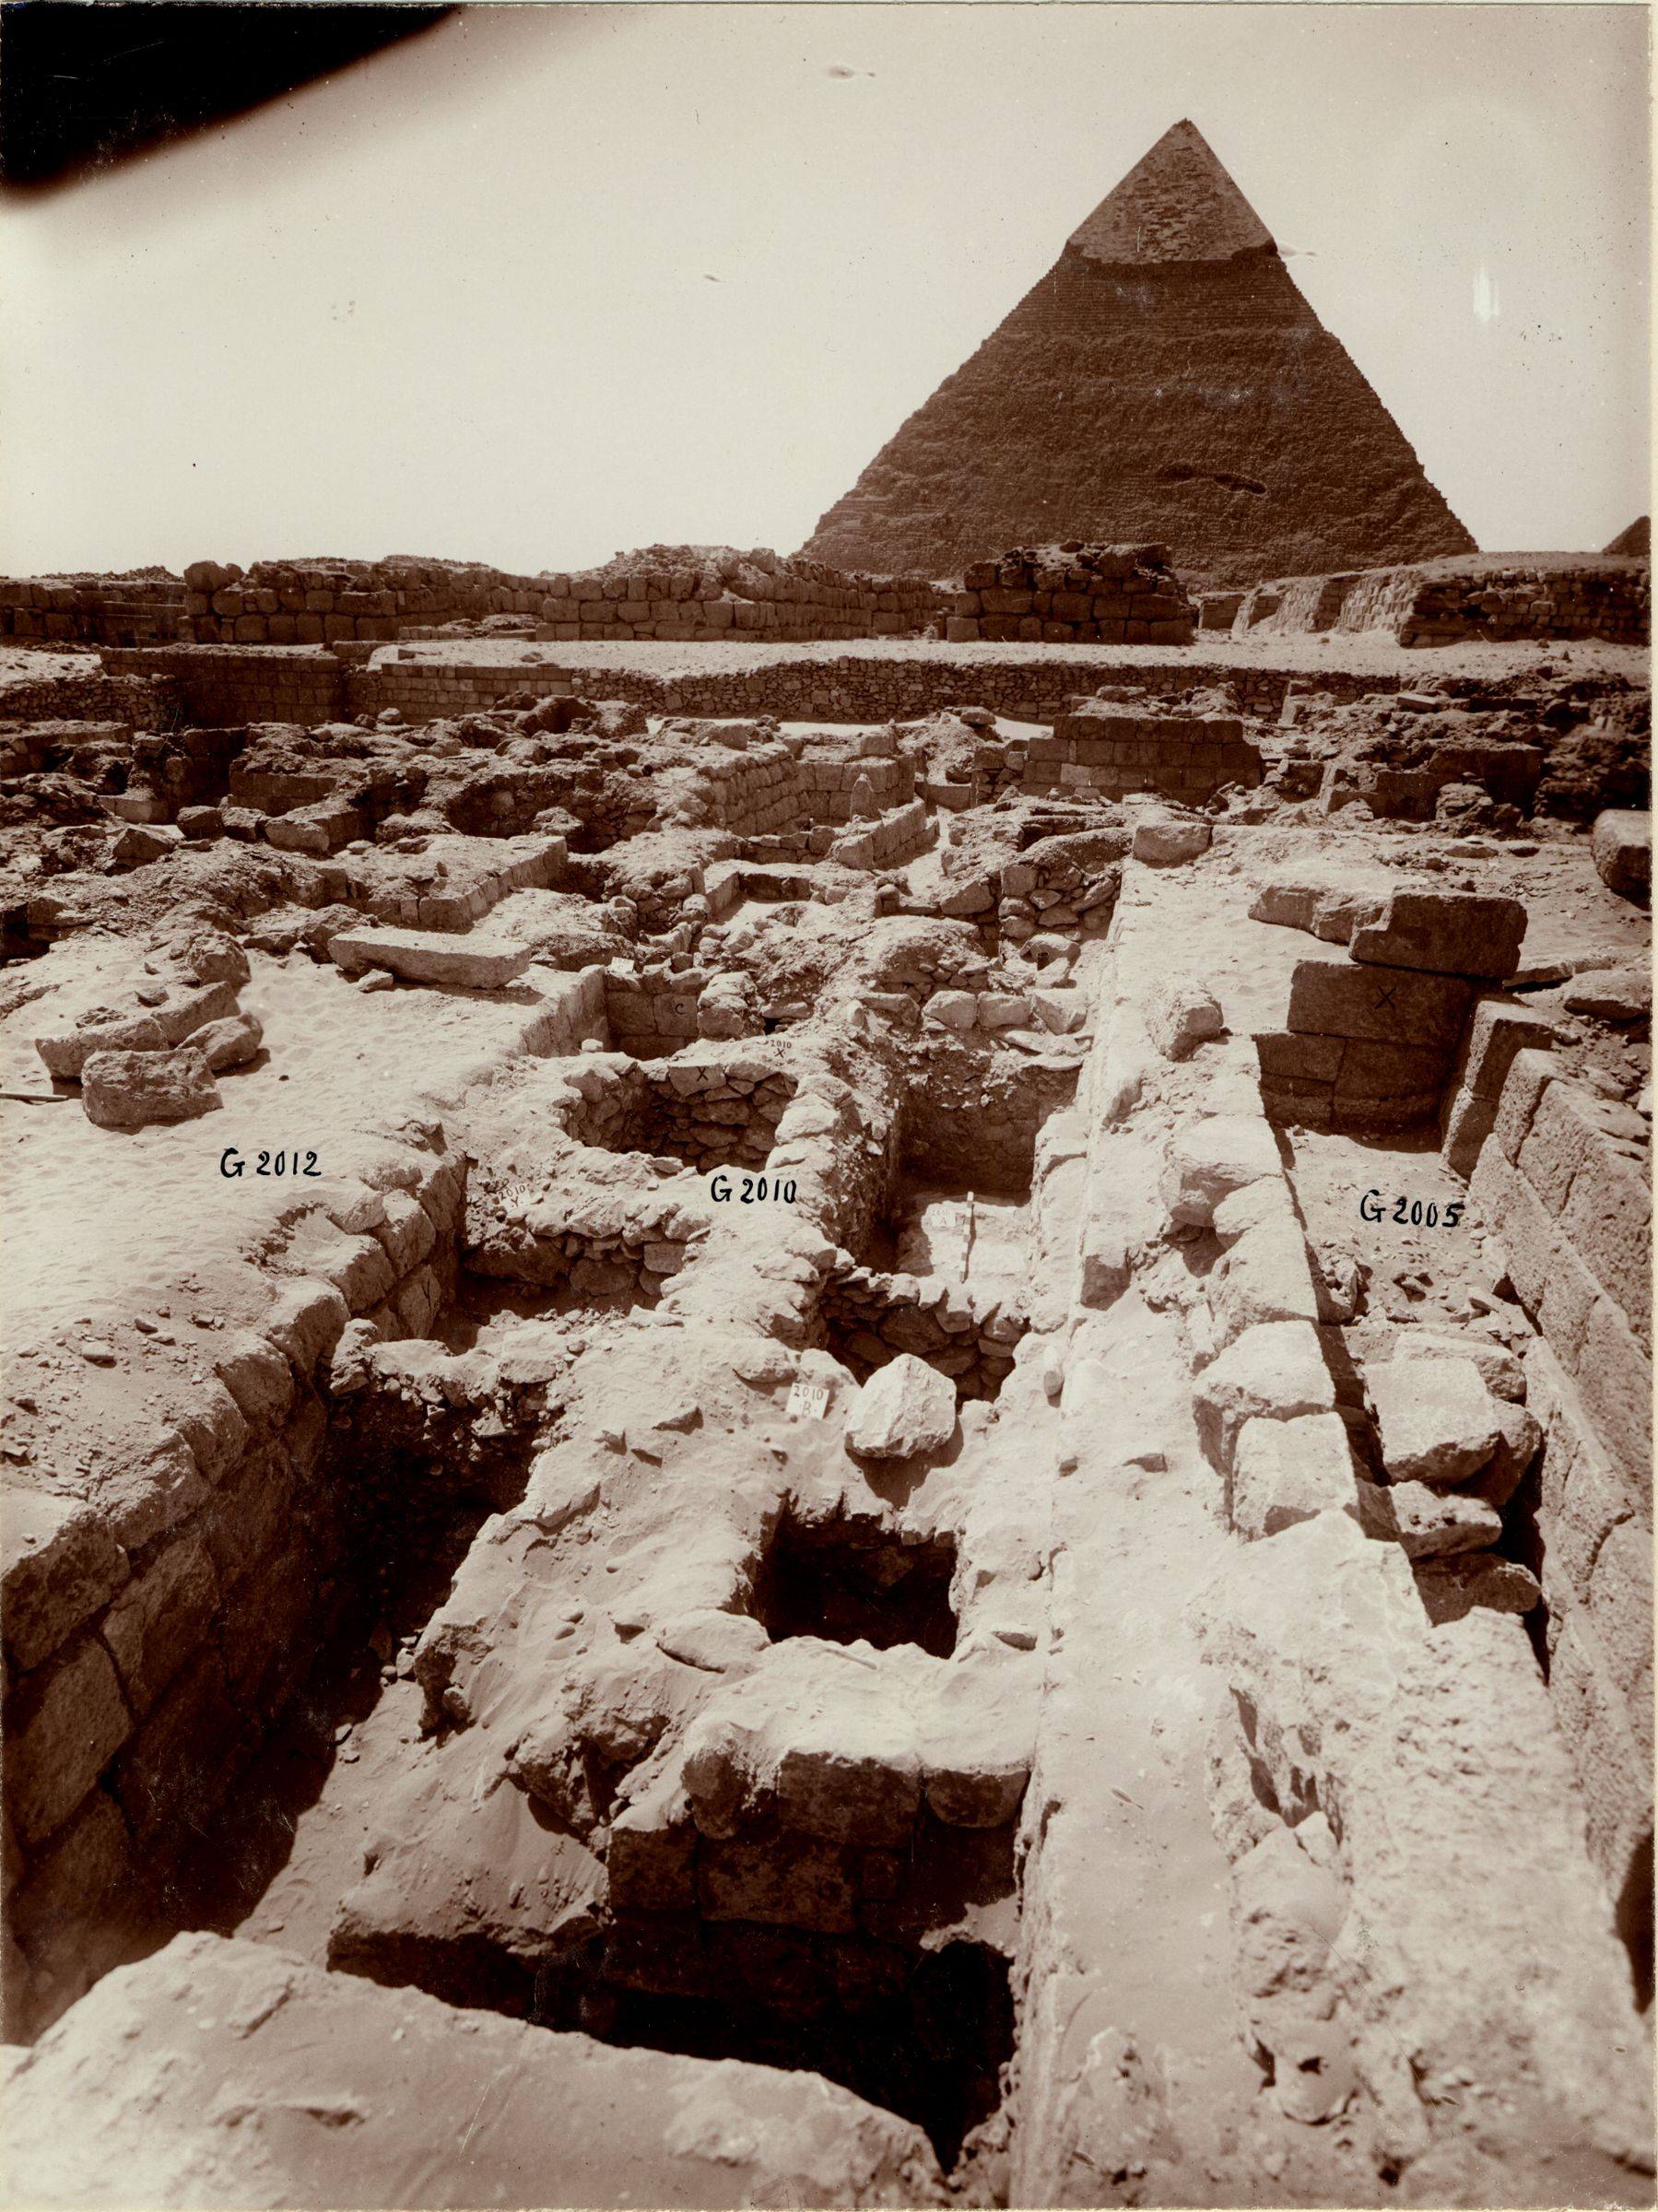 Western Cemetery: Site: Giza; View: G 2005, G 2010, G 2012